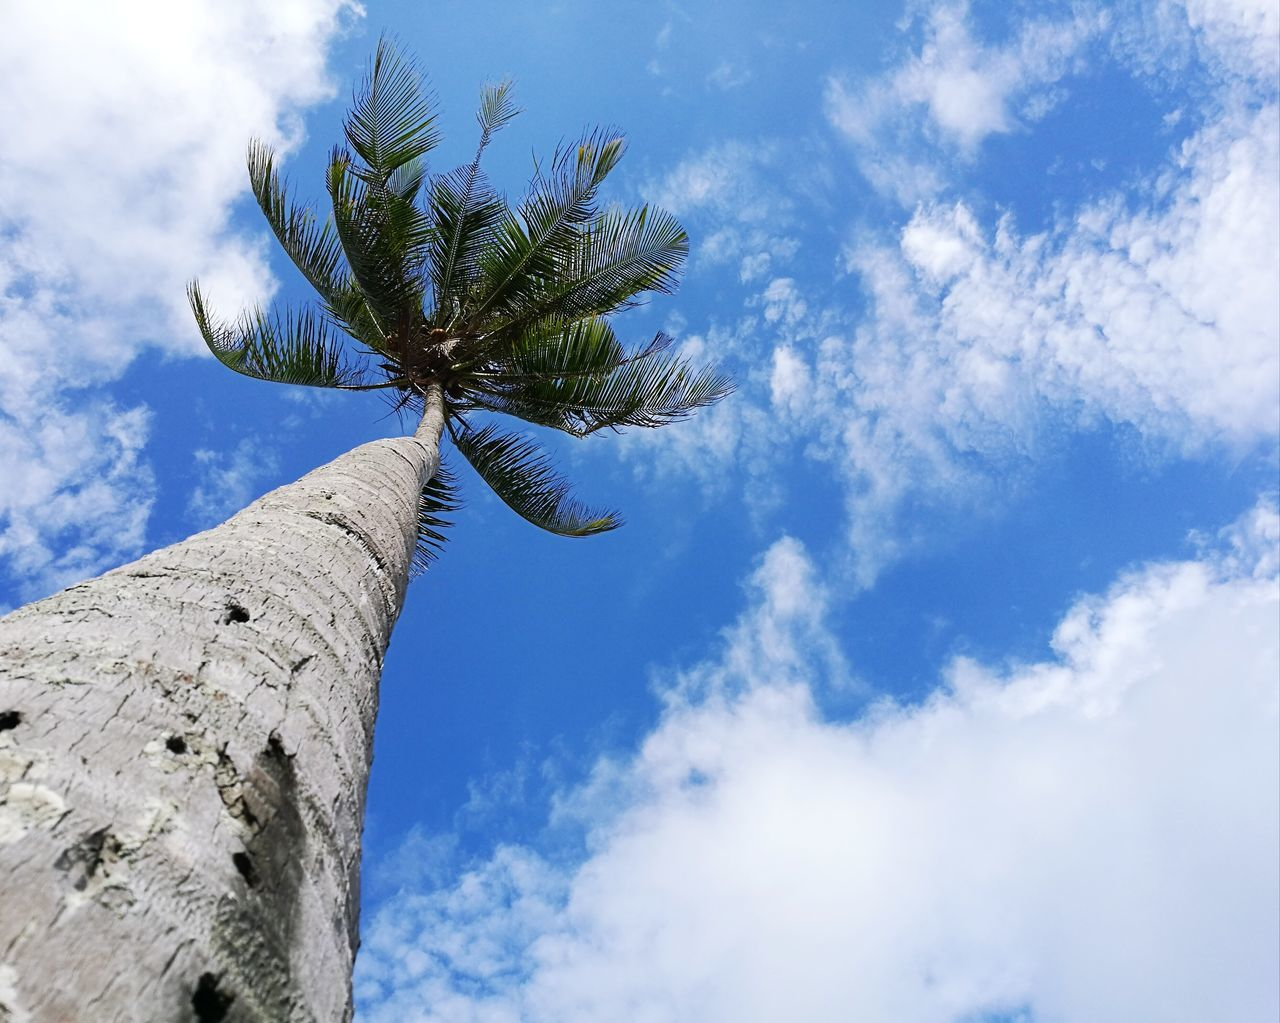 low angle view, sky, cloud - sky, tree, day, palm tree, outdoors, nature, tree trunk, no people, blue, growth, beauty in nature, architecture, ancient civilization